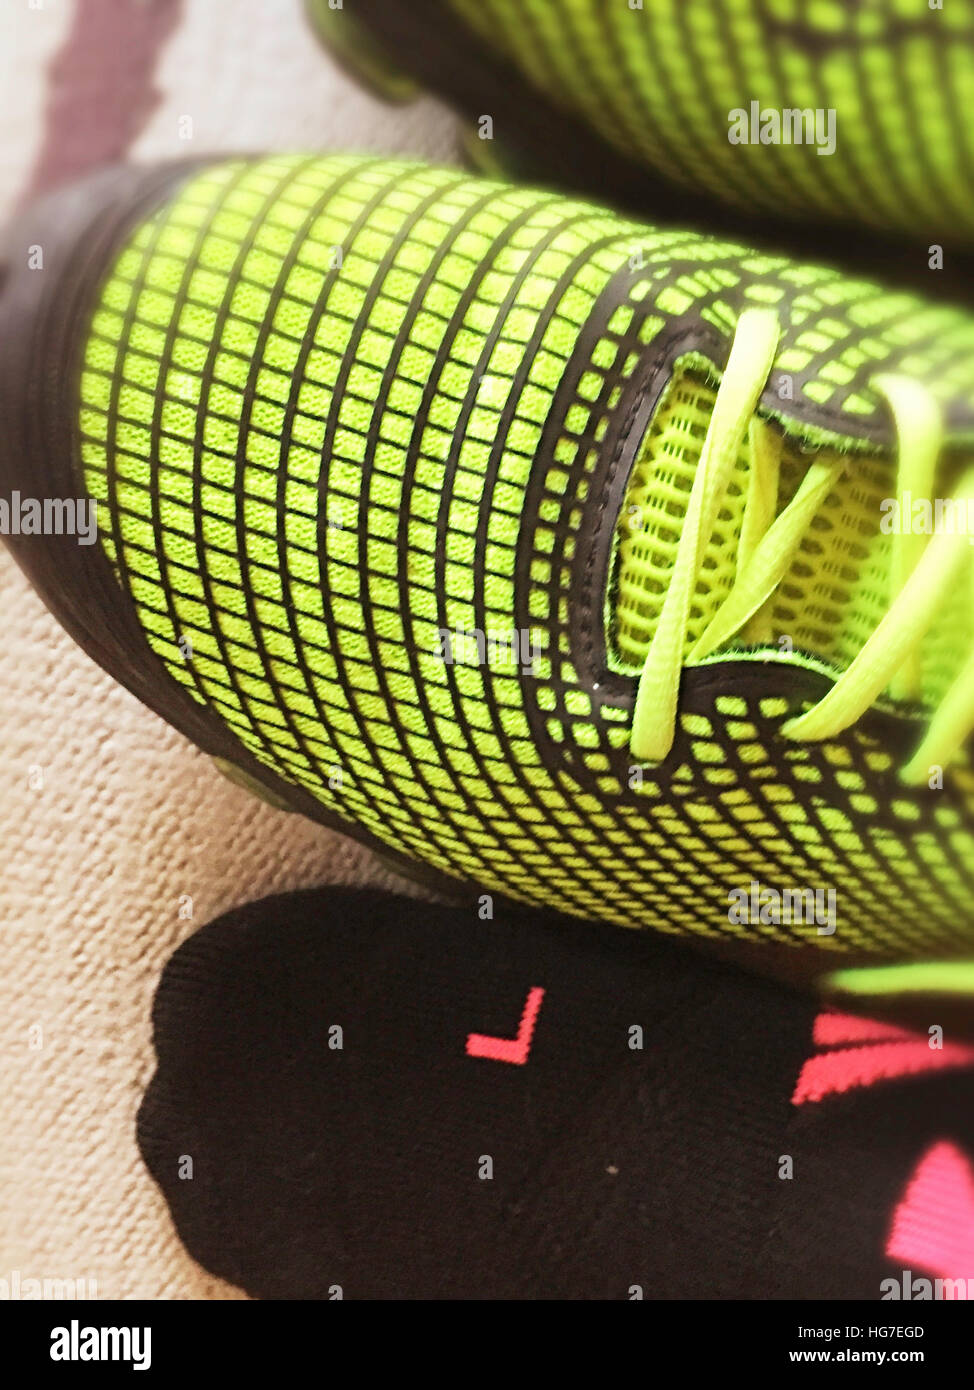 Bright Neon Green Running Shoes with Compression Sock fro Left Foot - Stock Image